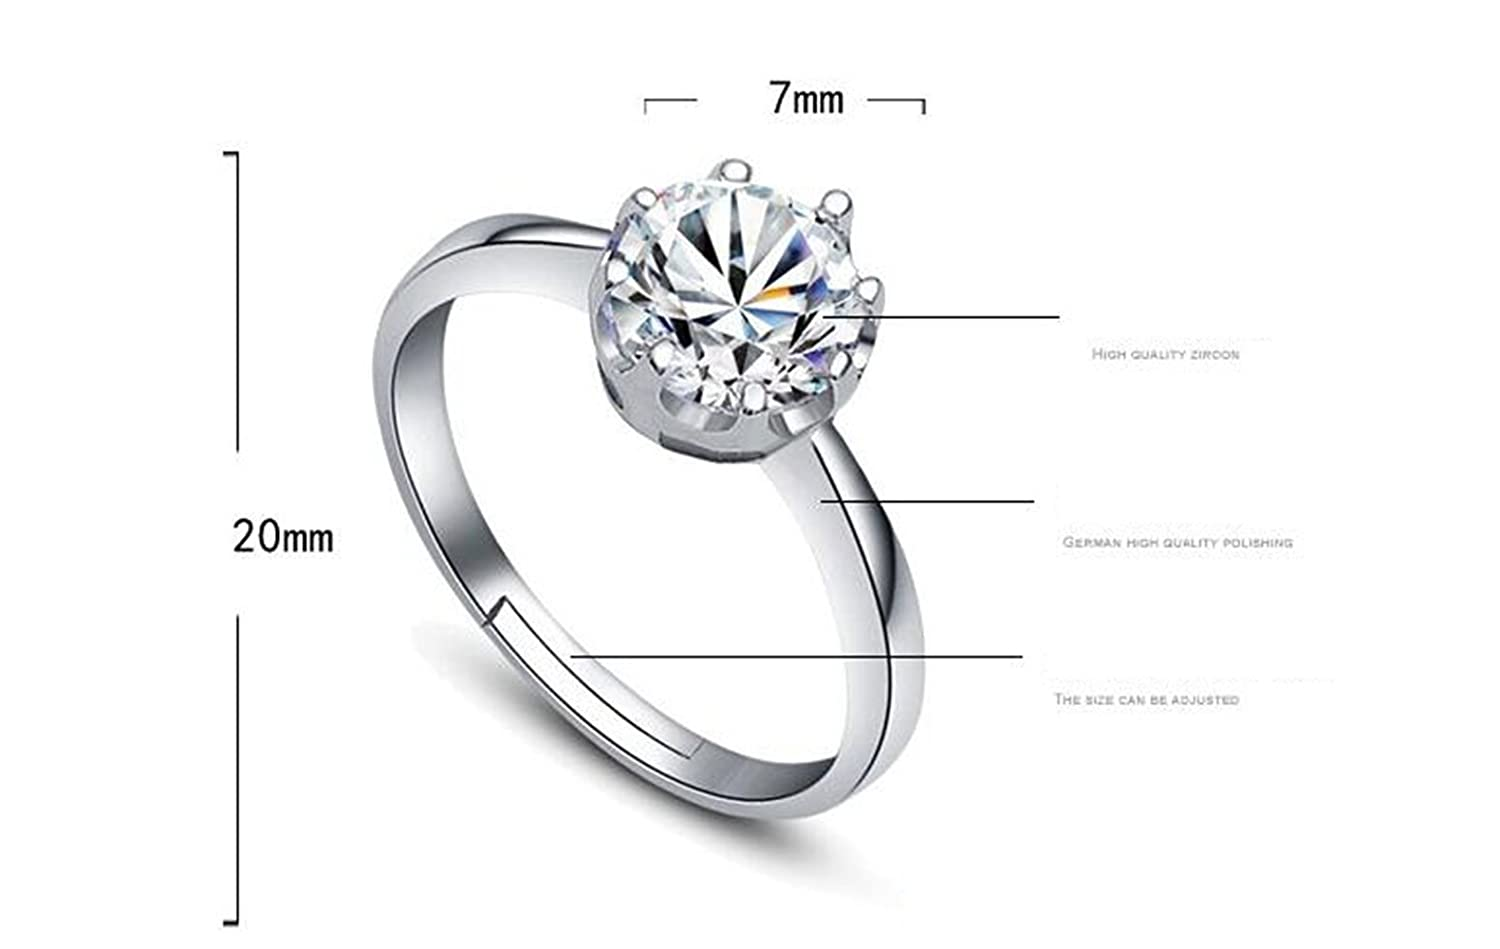 Amazon Women's Cubic Zirconia Anniversary Wedding Band Engagement Ring Sets 925 Sterling Silver Adjustable Jewelry: Thin Wedding Bands For Women Arthritis At Websimilar.org